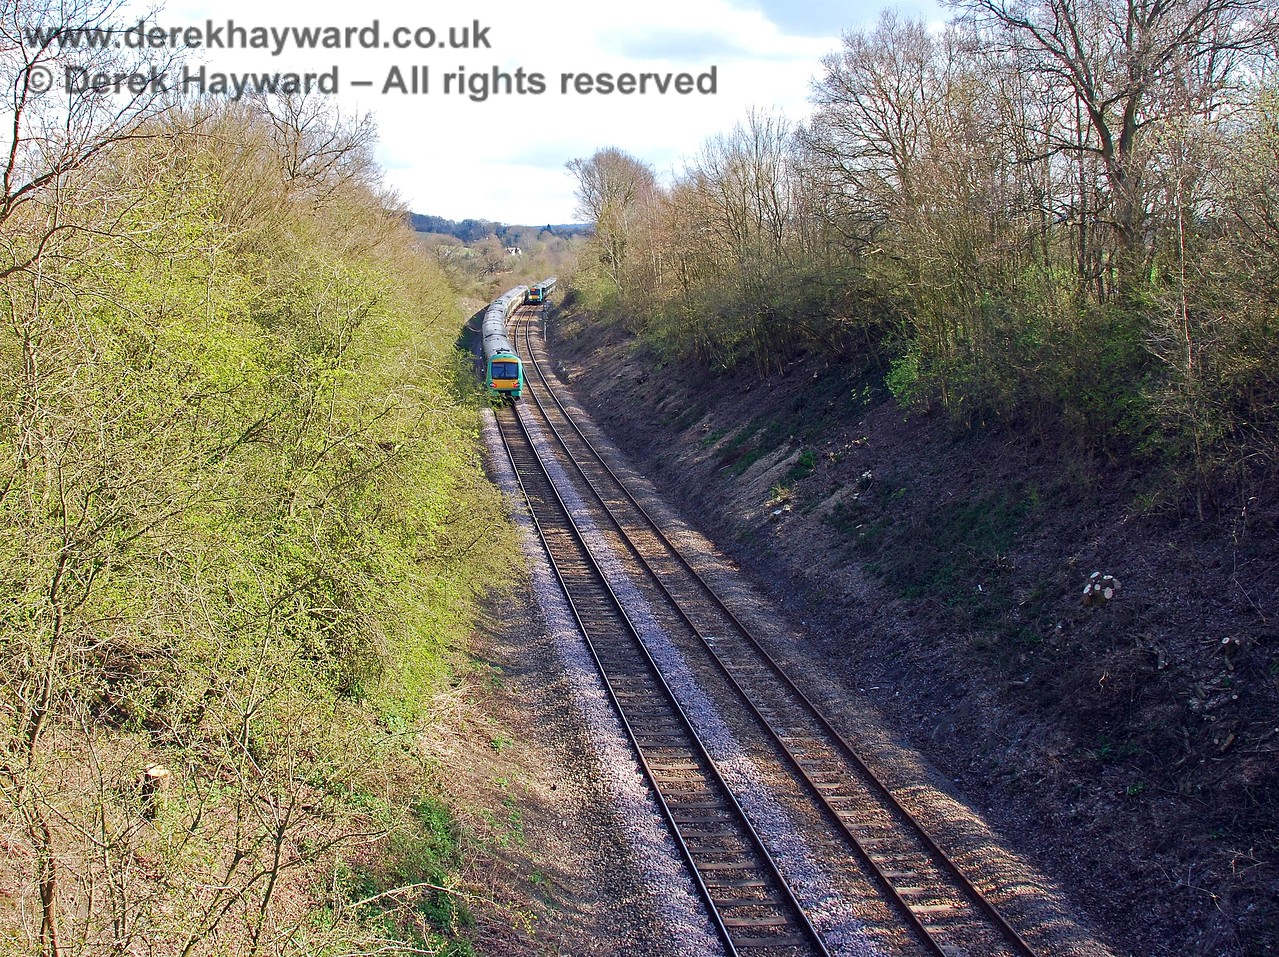 Looking south towards Ashurst from Willetts Bridge. A 171 Turbostar has just left the single line section and the northbound train waits to proceed. 09.04.2008